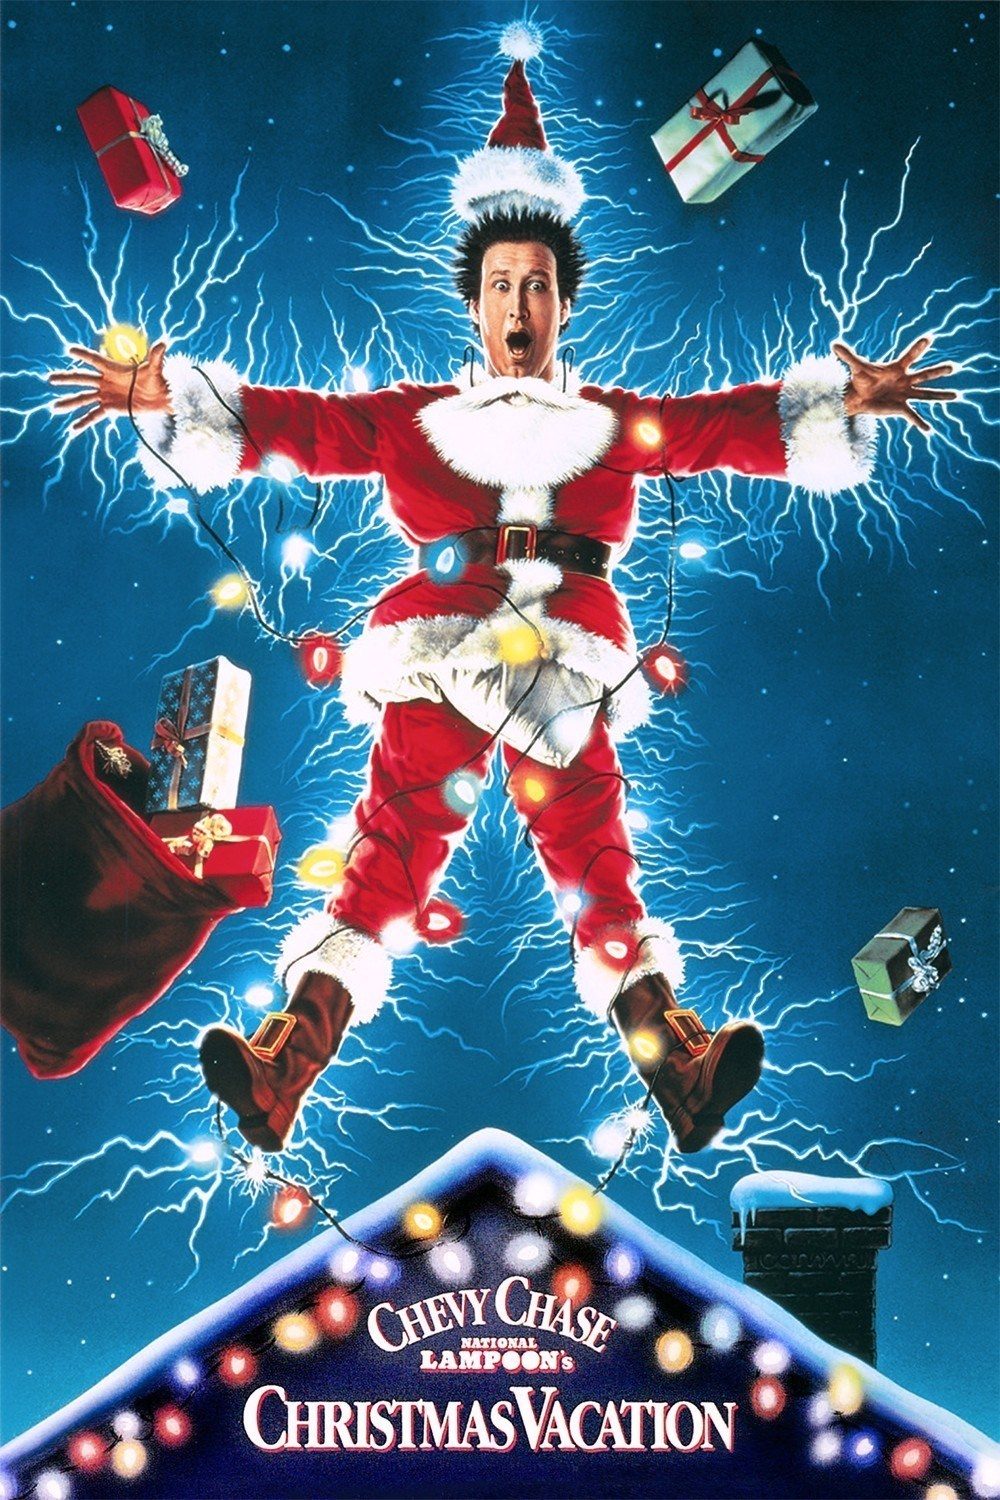 Christmas Film Screening; National Lampoon's Christmas Vacation